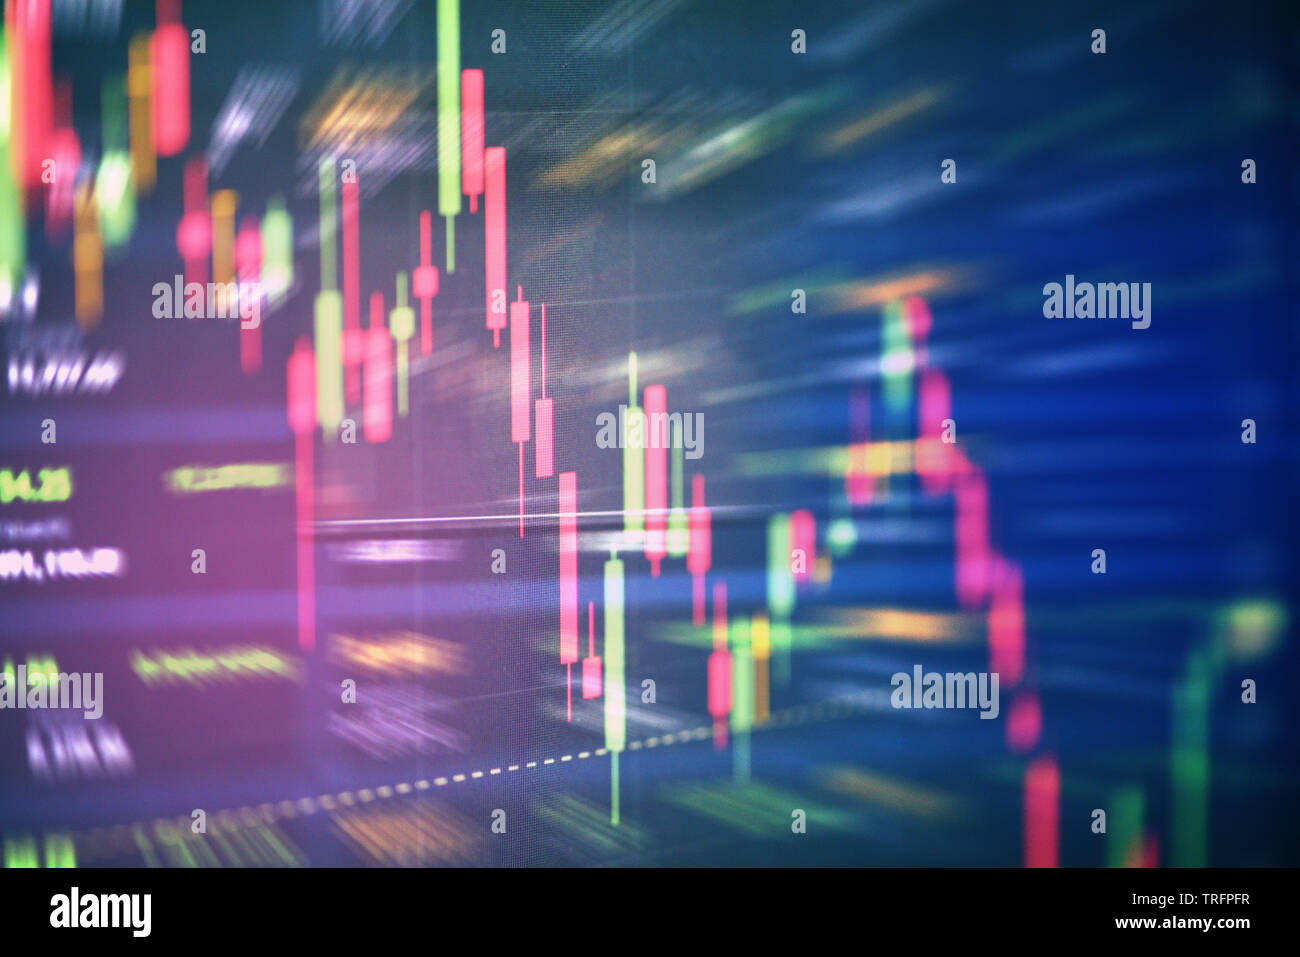 Stock crisis red price drop down chart fall / Stock market exchange analysis or forex graph business and finance crash money losing moving economic in Stock Photo